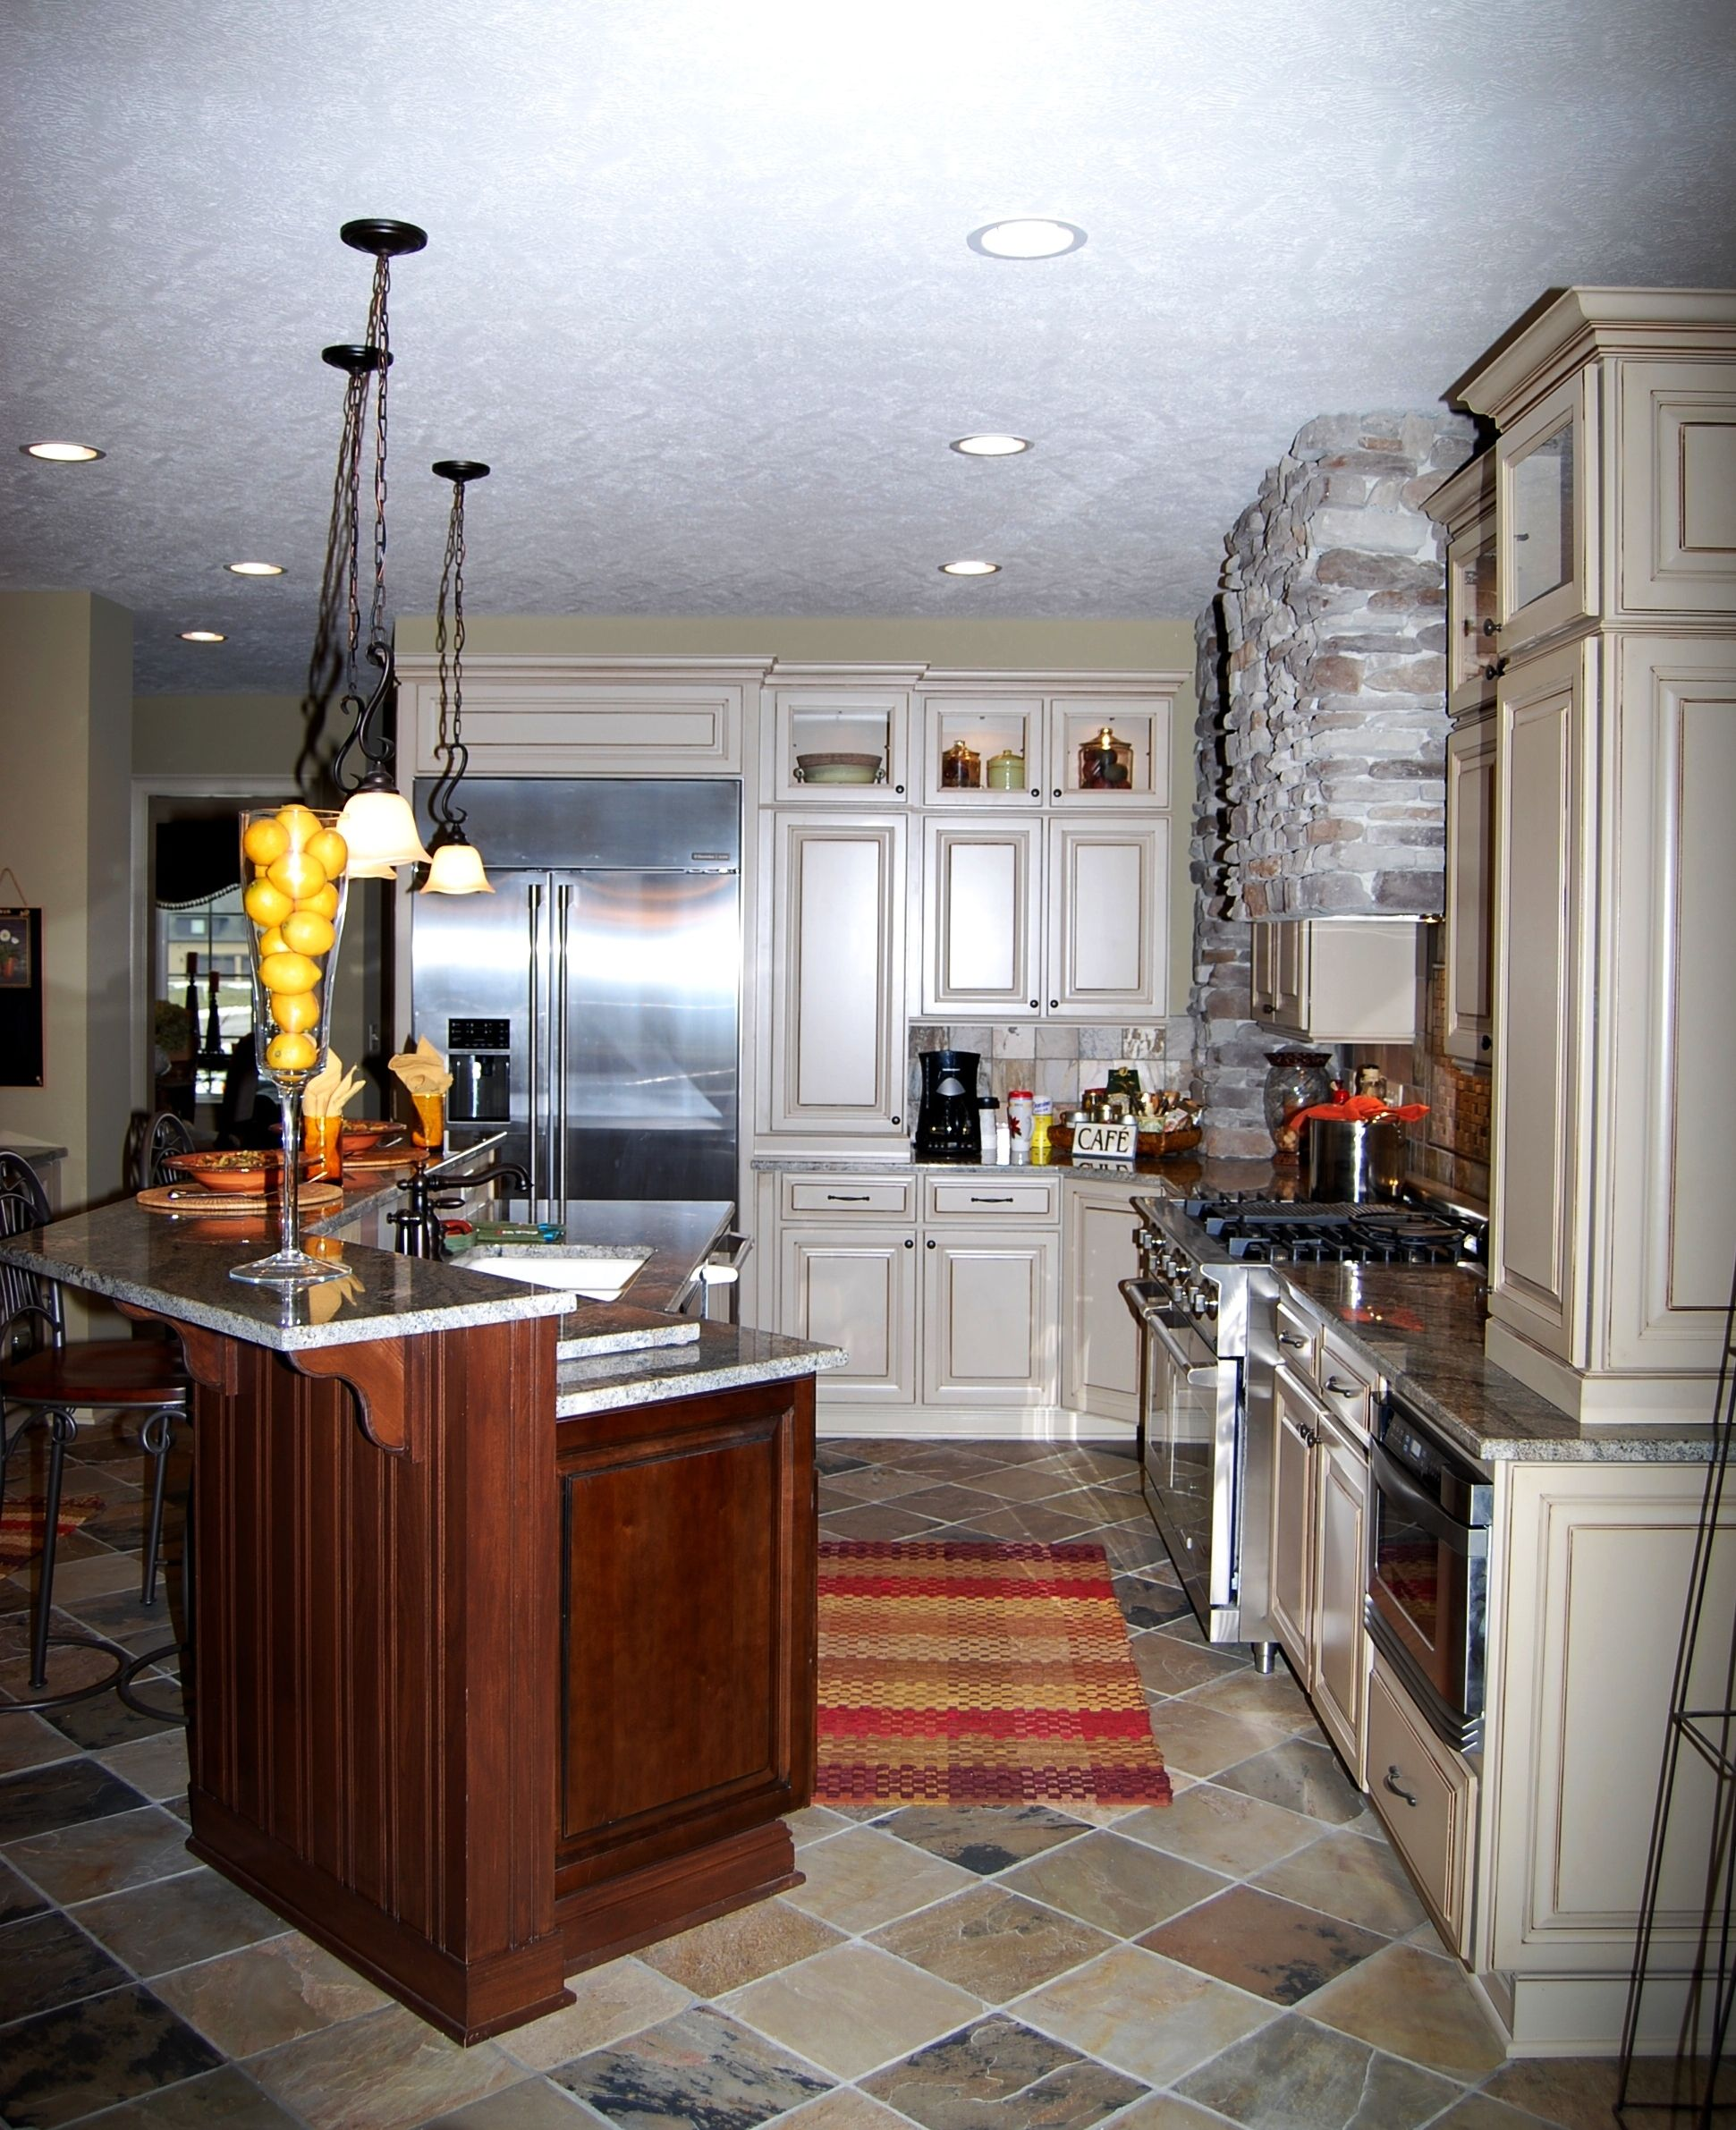 painted and wood cabinetry mixed kitchen design ideas pinterest